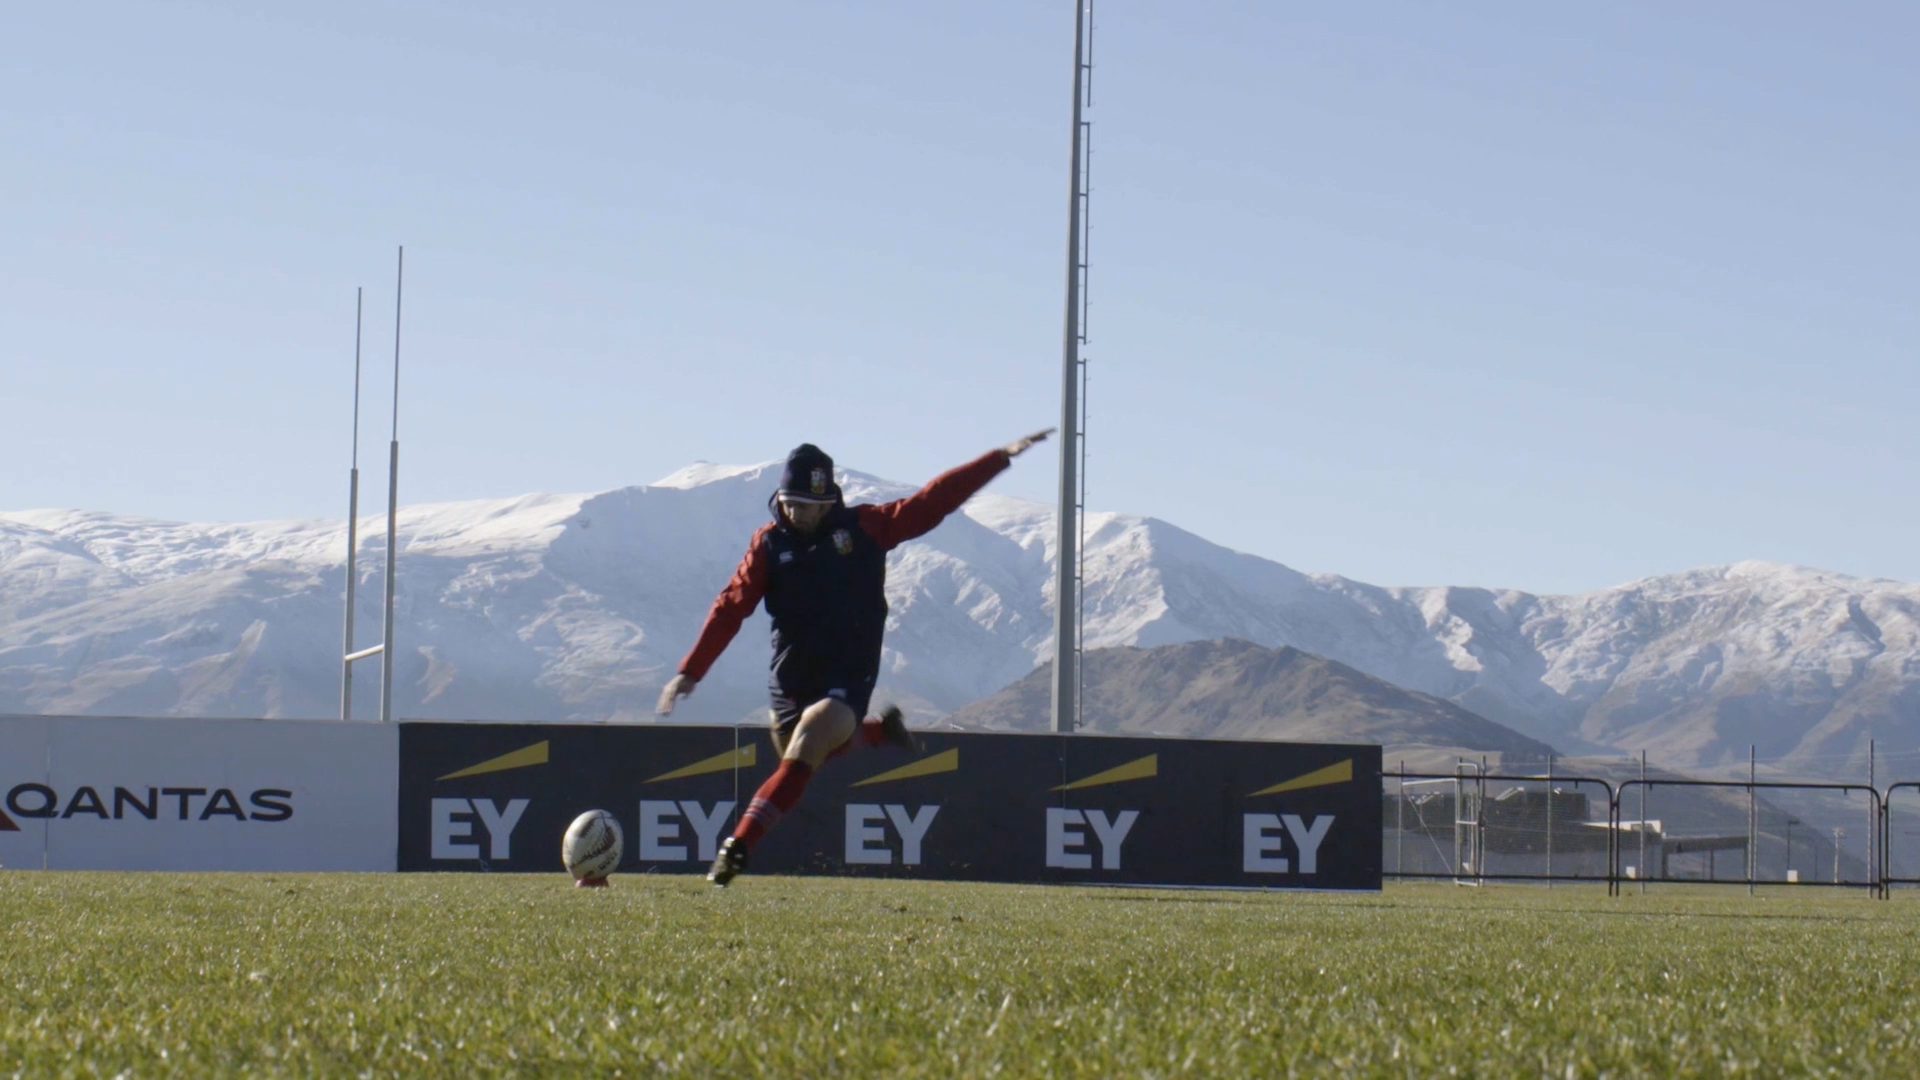 EY – De British & Irish Lions